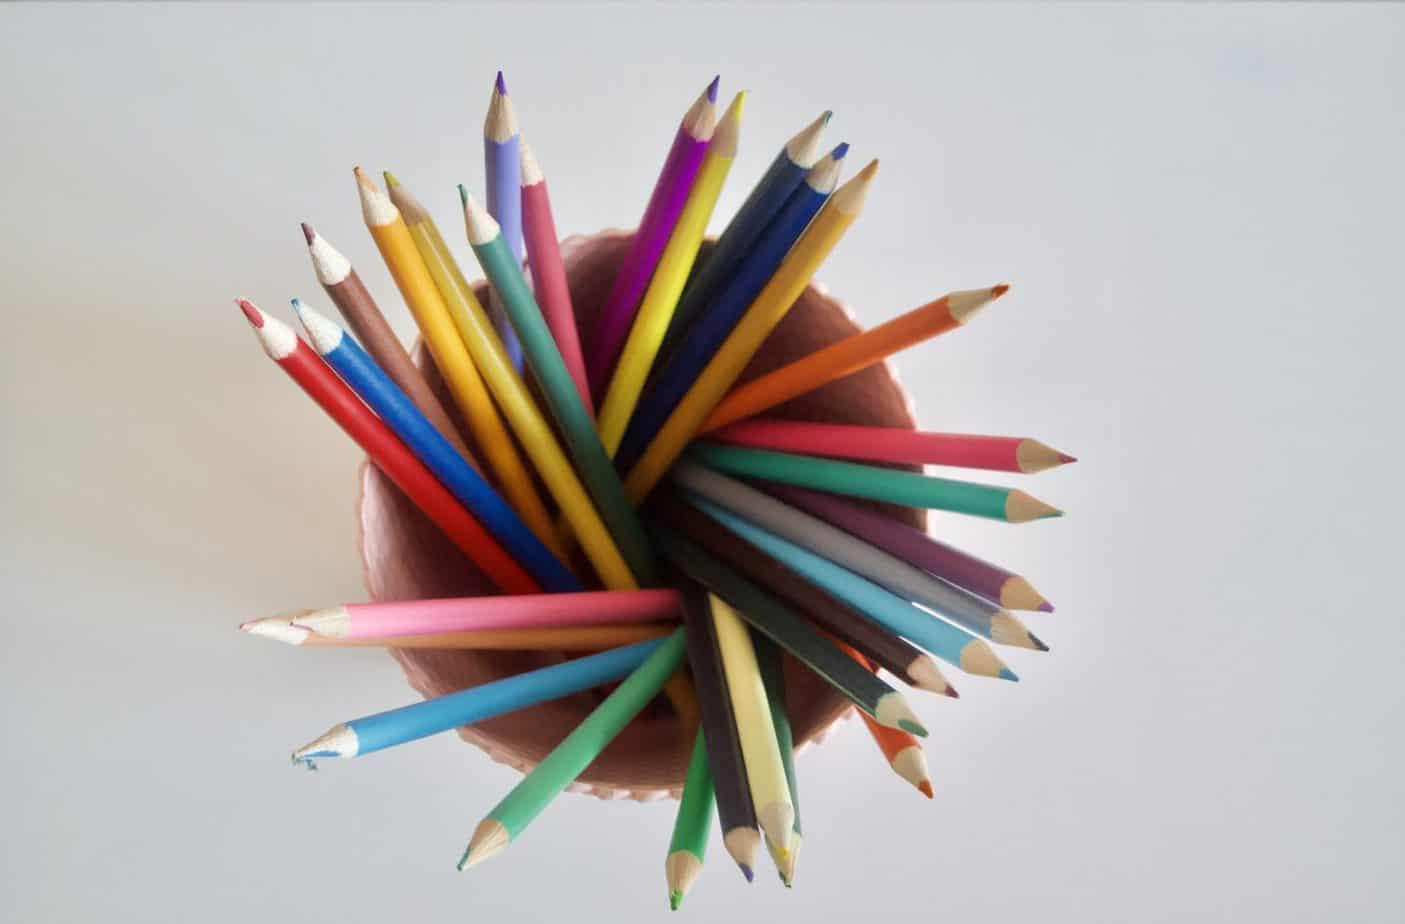 Pack of 30 pencils fare included in my desk essentials for kids